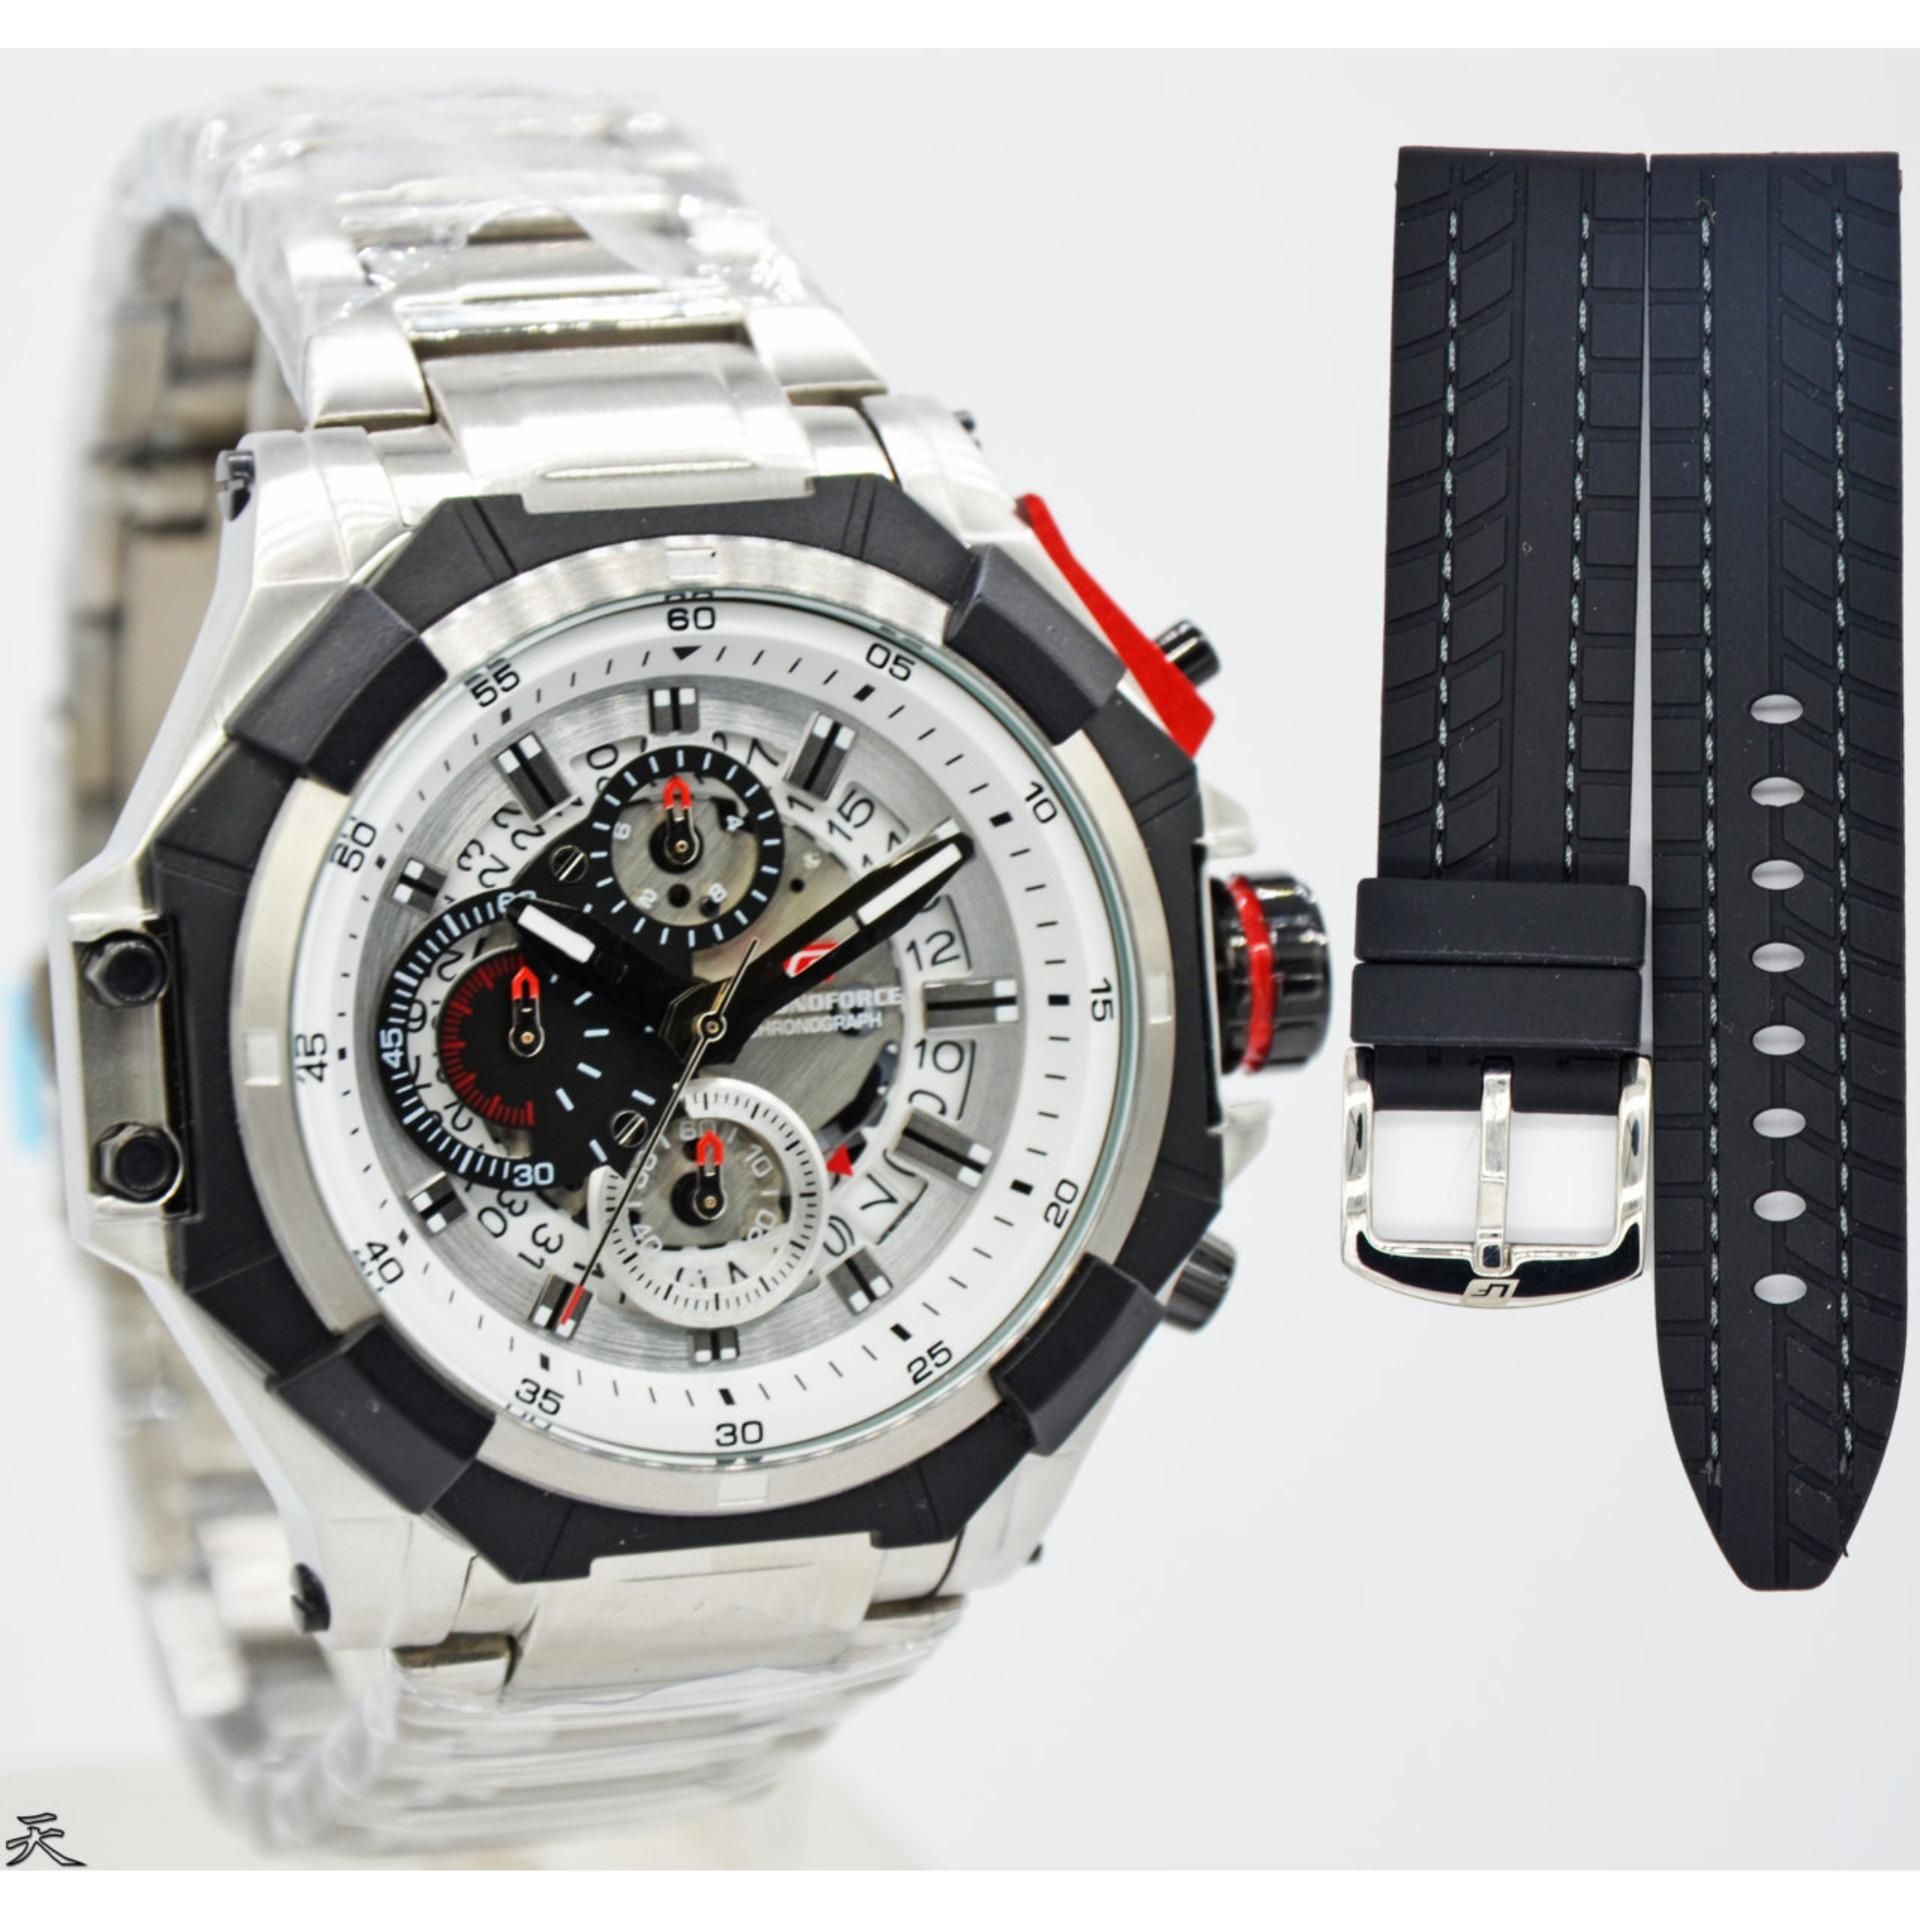 Chronoforce 5301M Jam Tangan Pria   Cowok Stainless Steel Free Tali Rubber ba2af3fe97